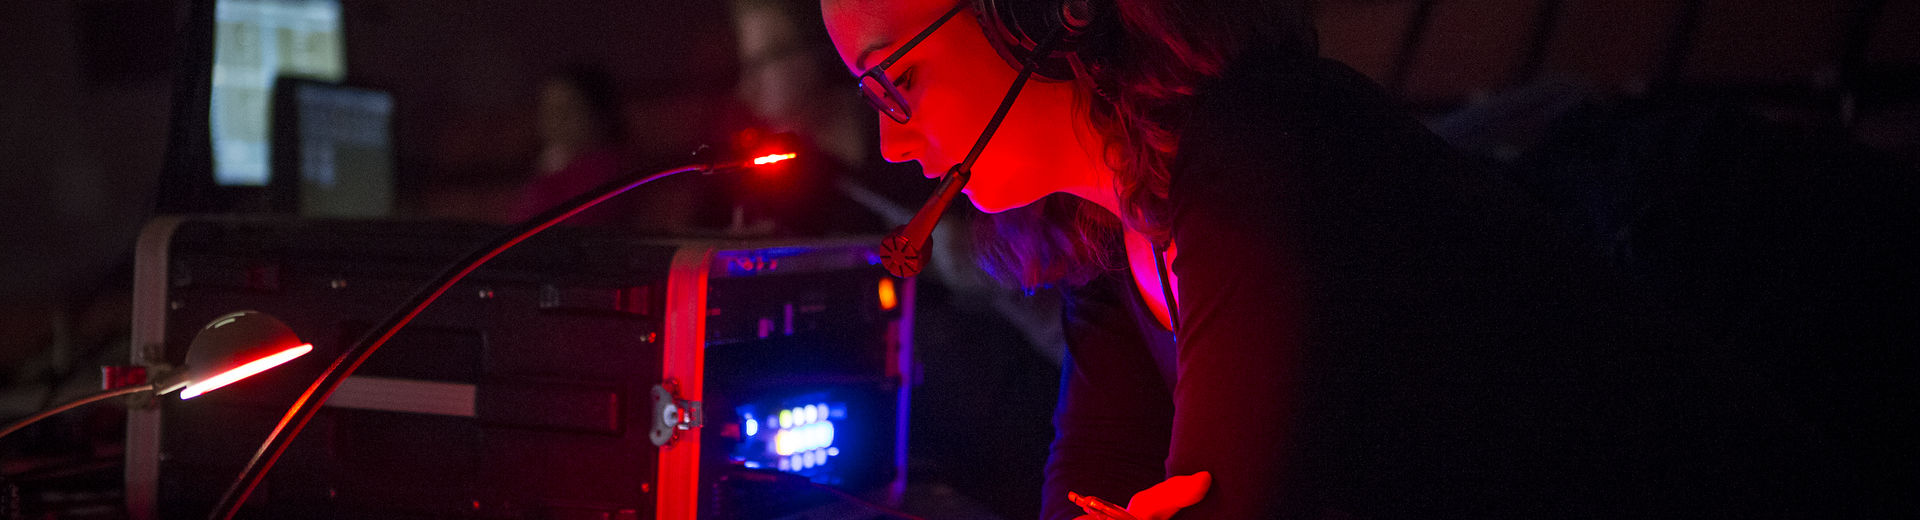 A woman with a headset reads in a darkened room backstage.